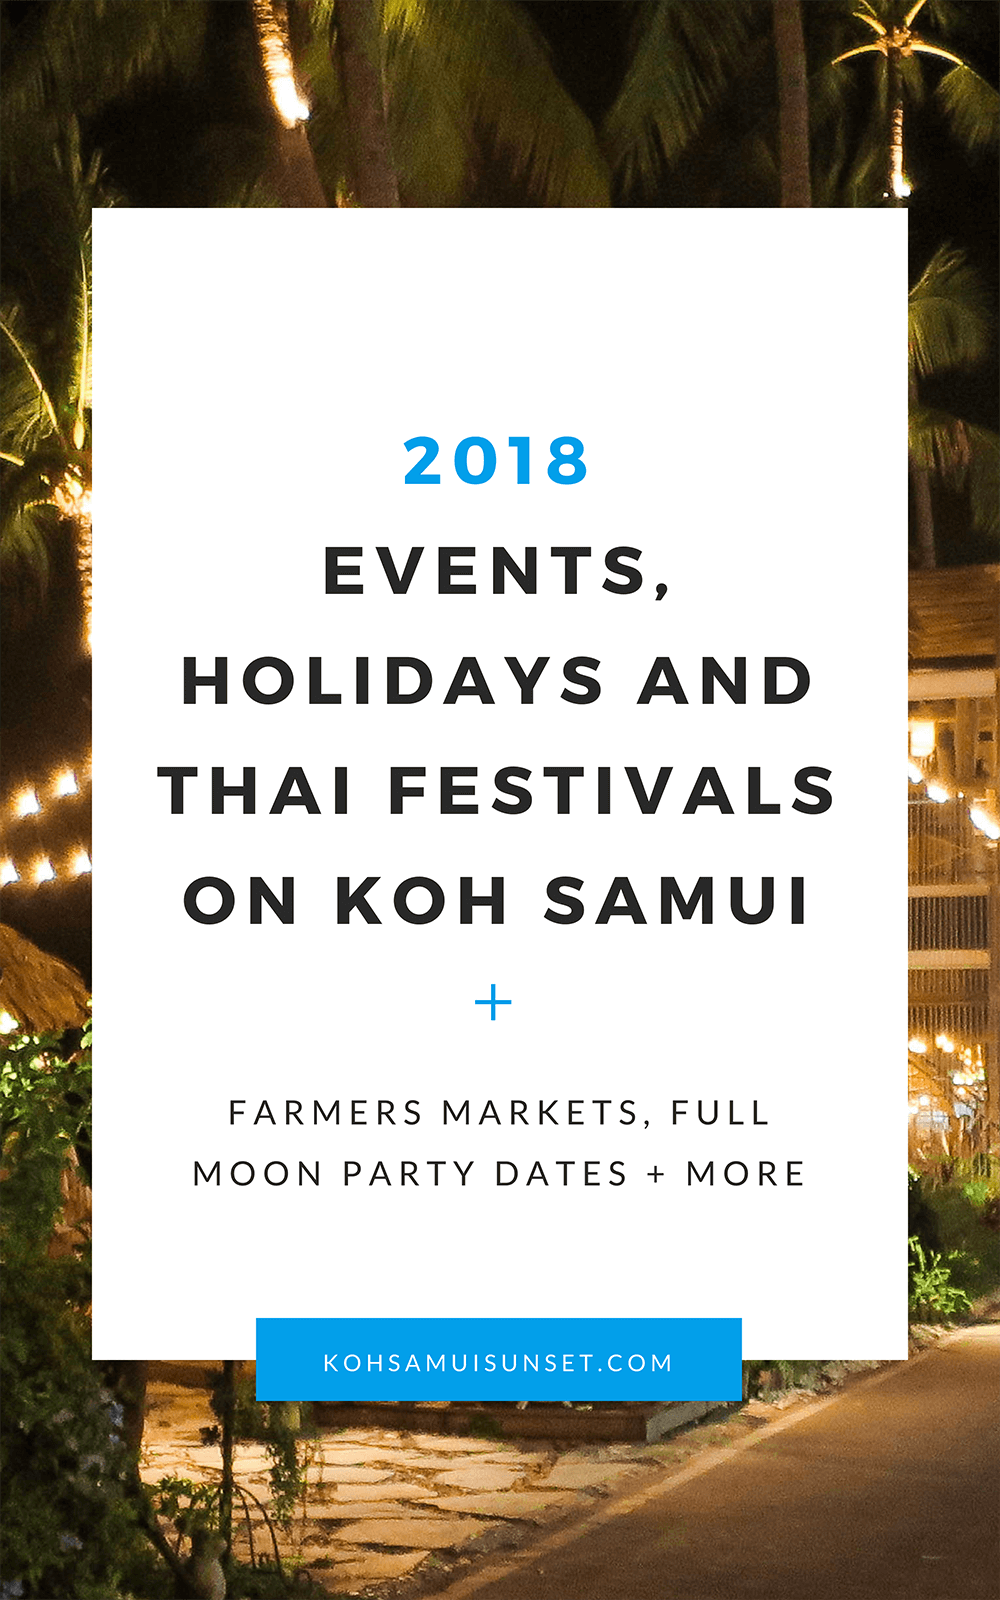 2018 koh samui events calendar island calendar updated often whats happening on koh